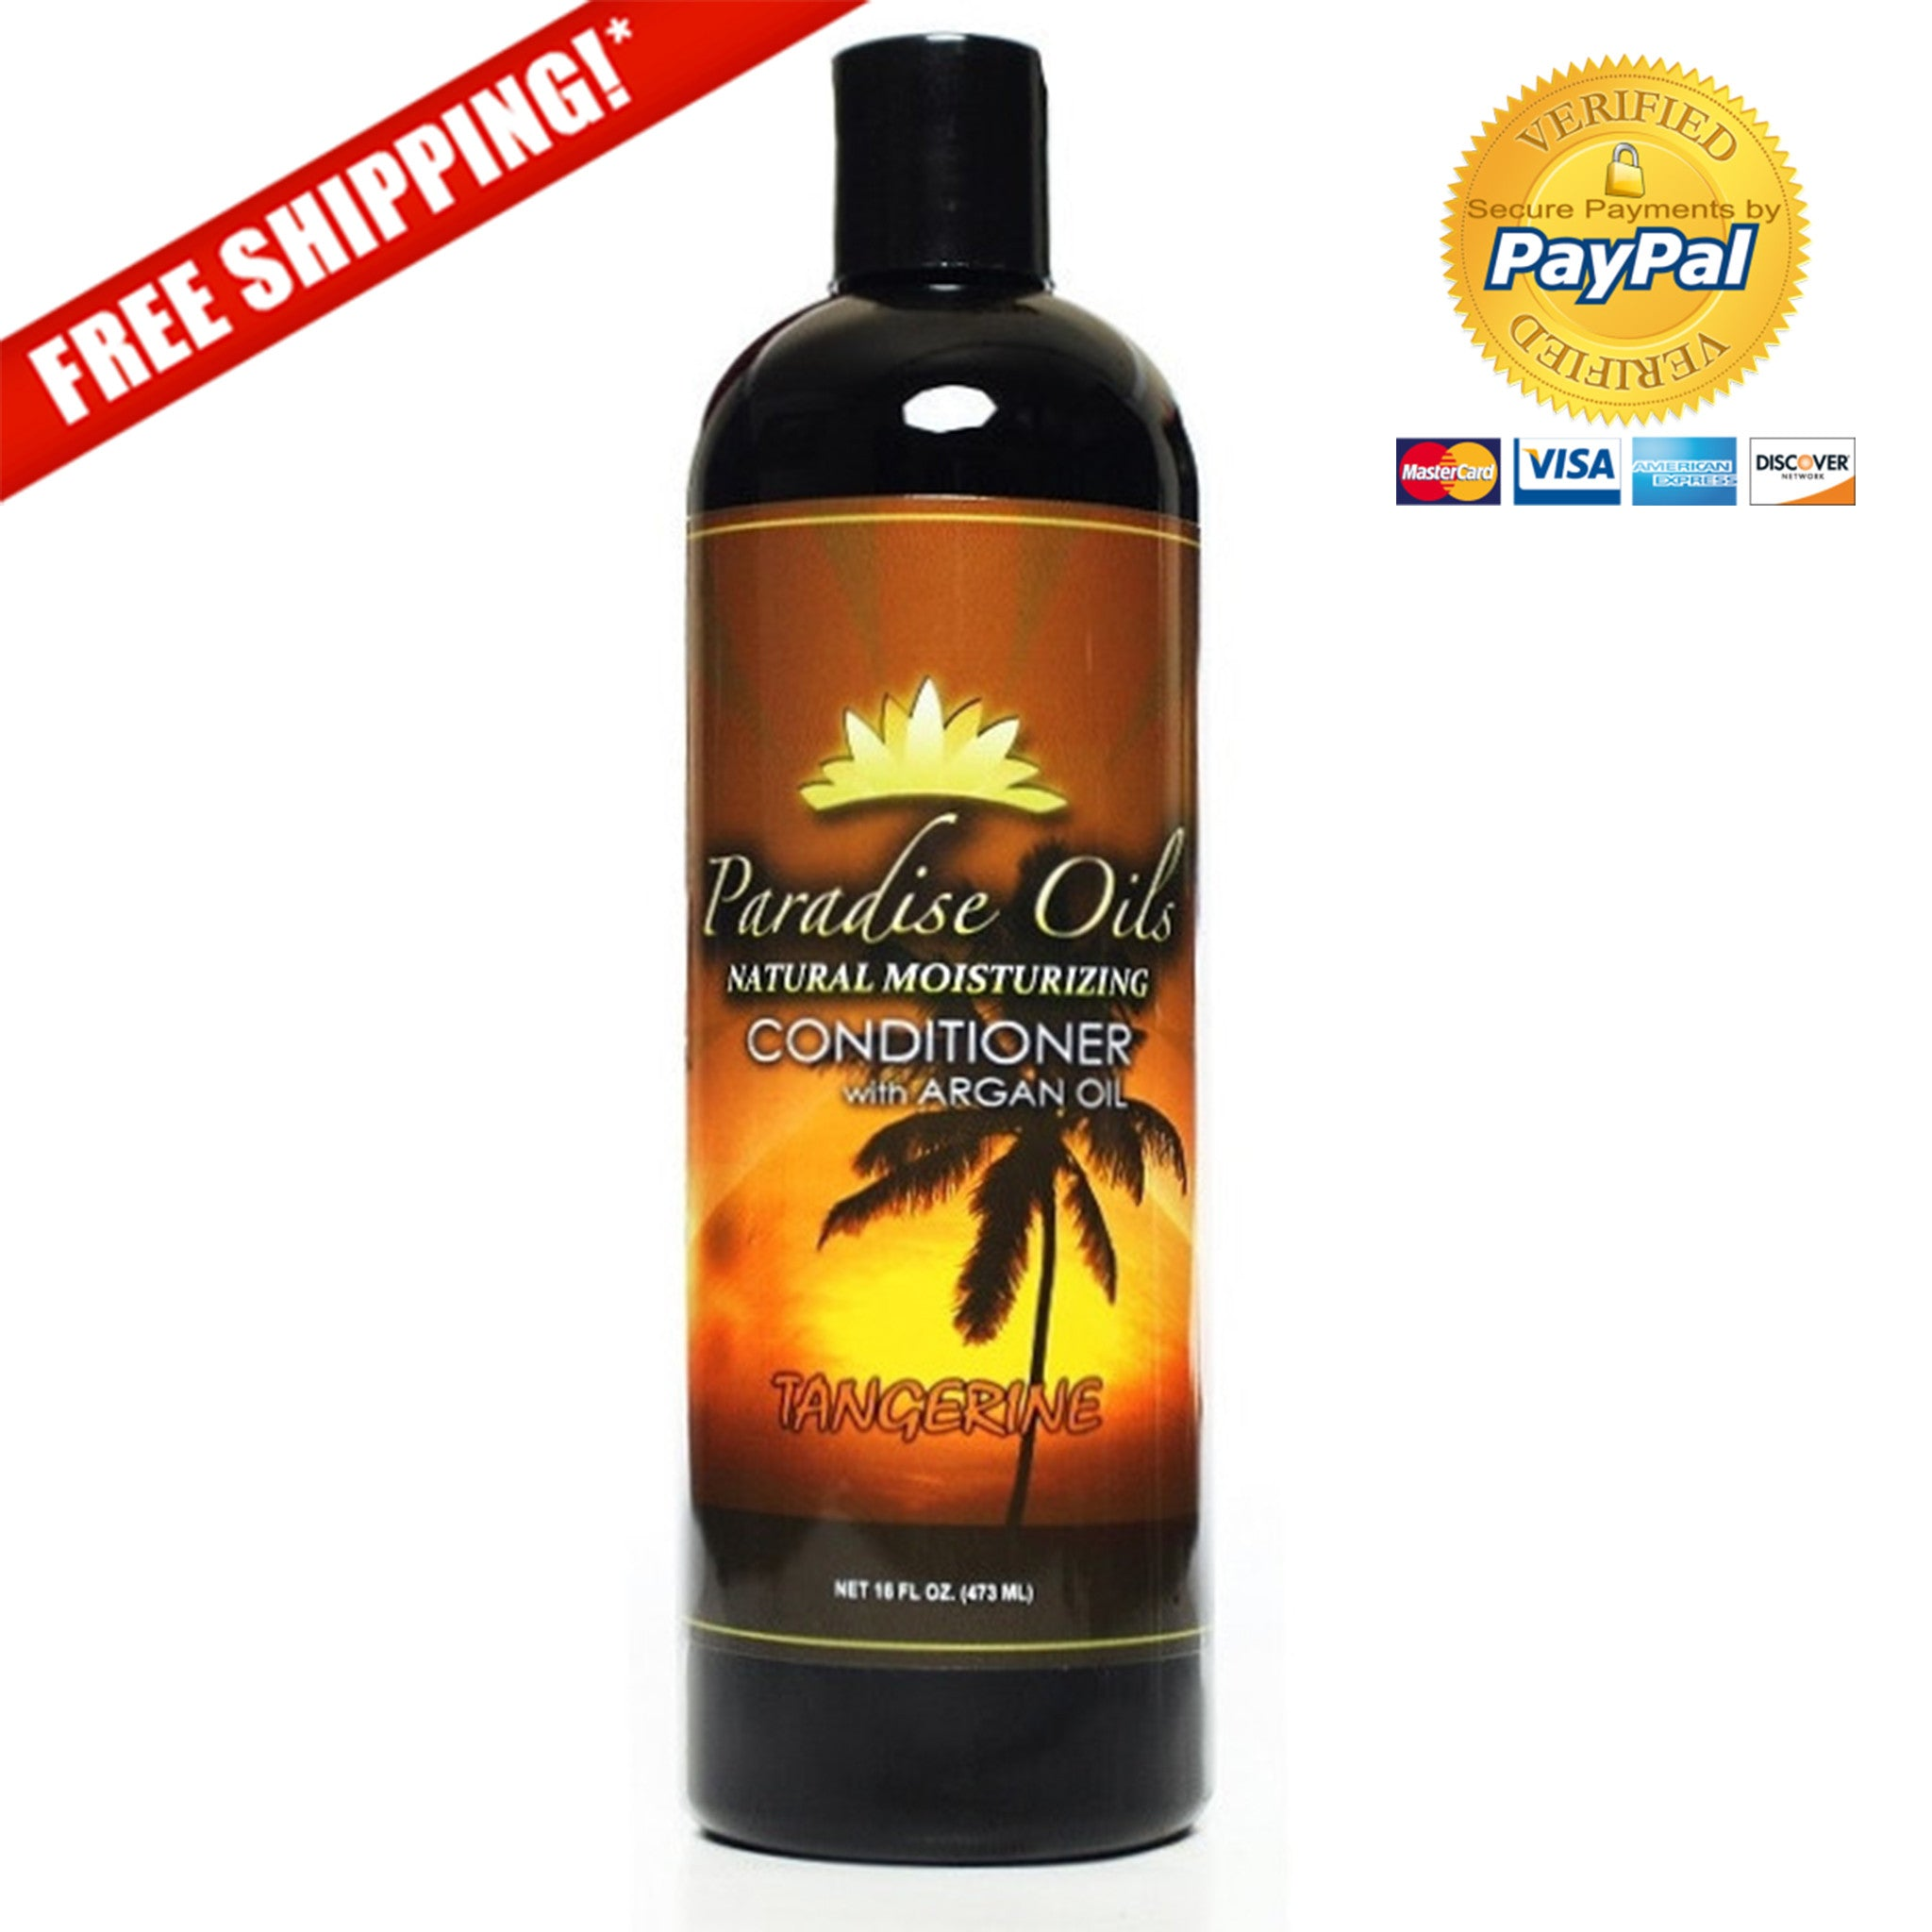 Paradise Oils Natural Moisturizing Conditioner - Tangerine